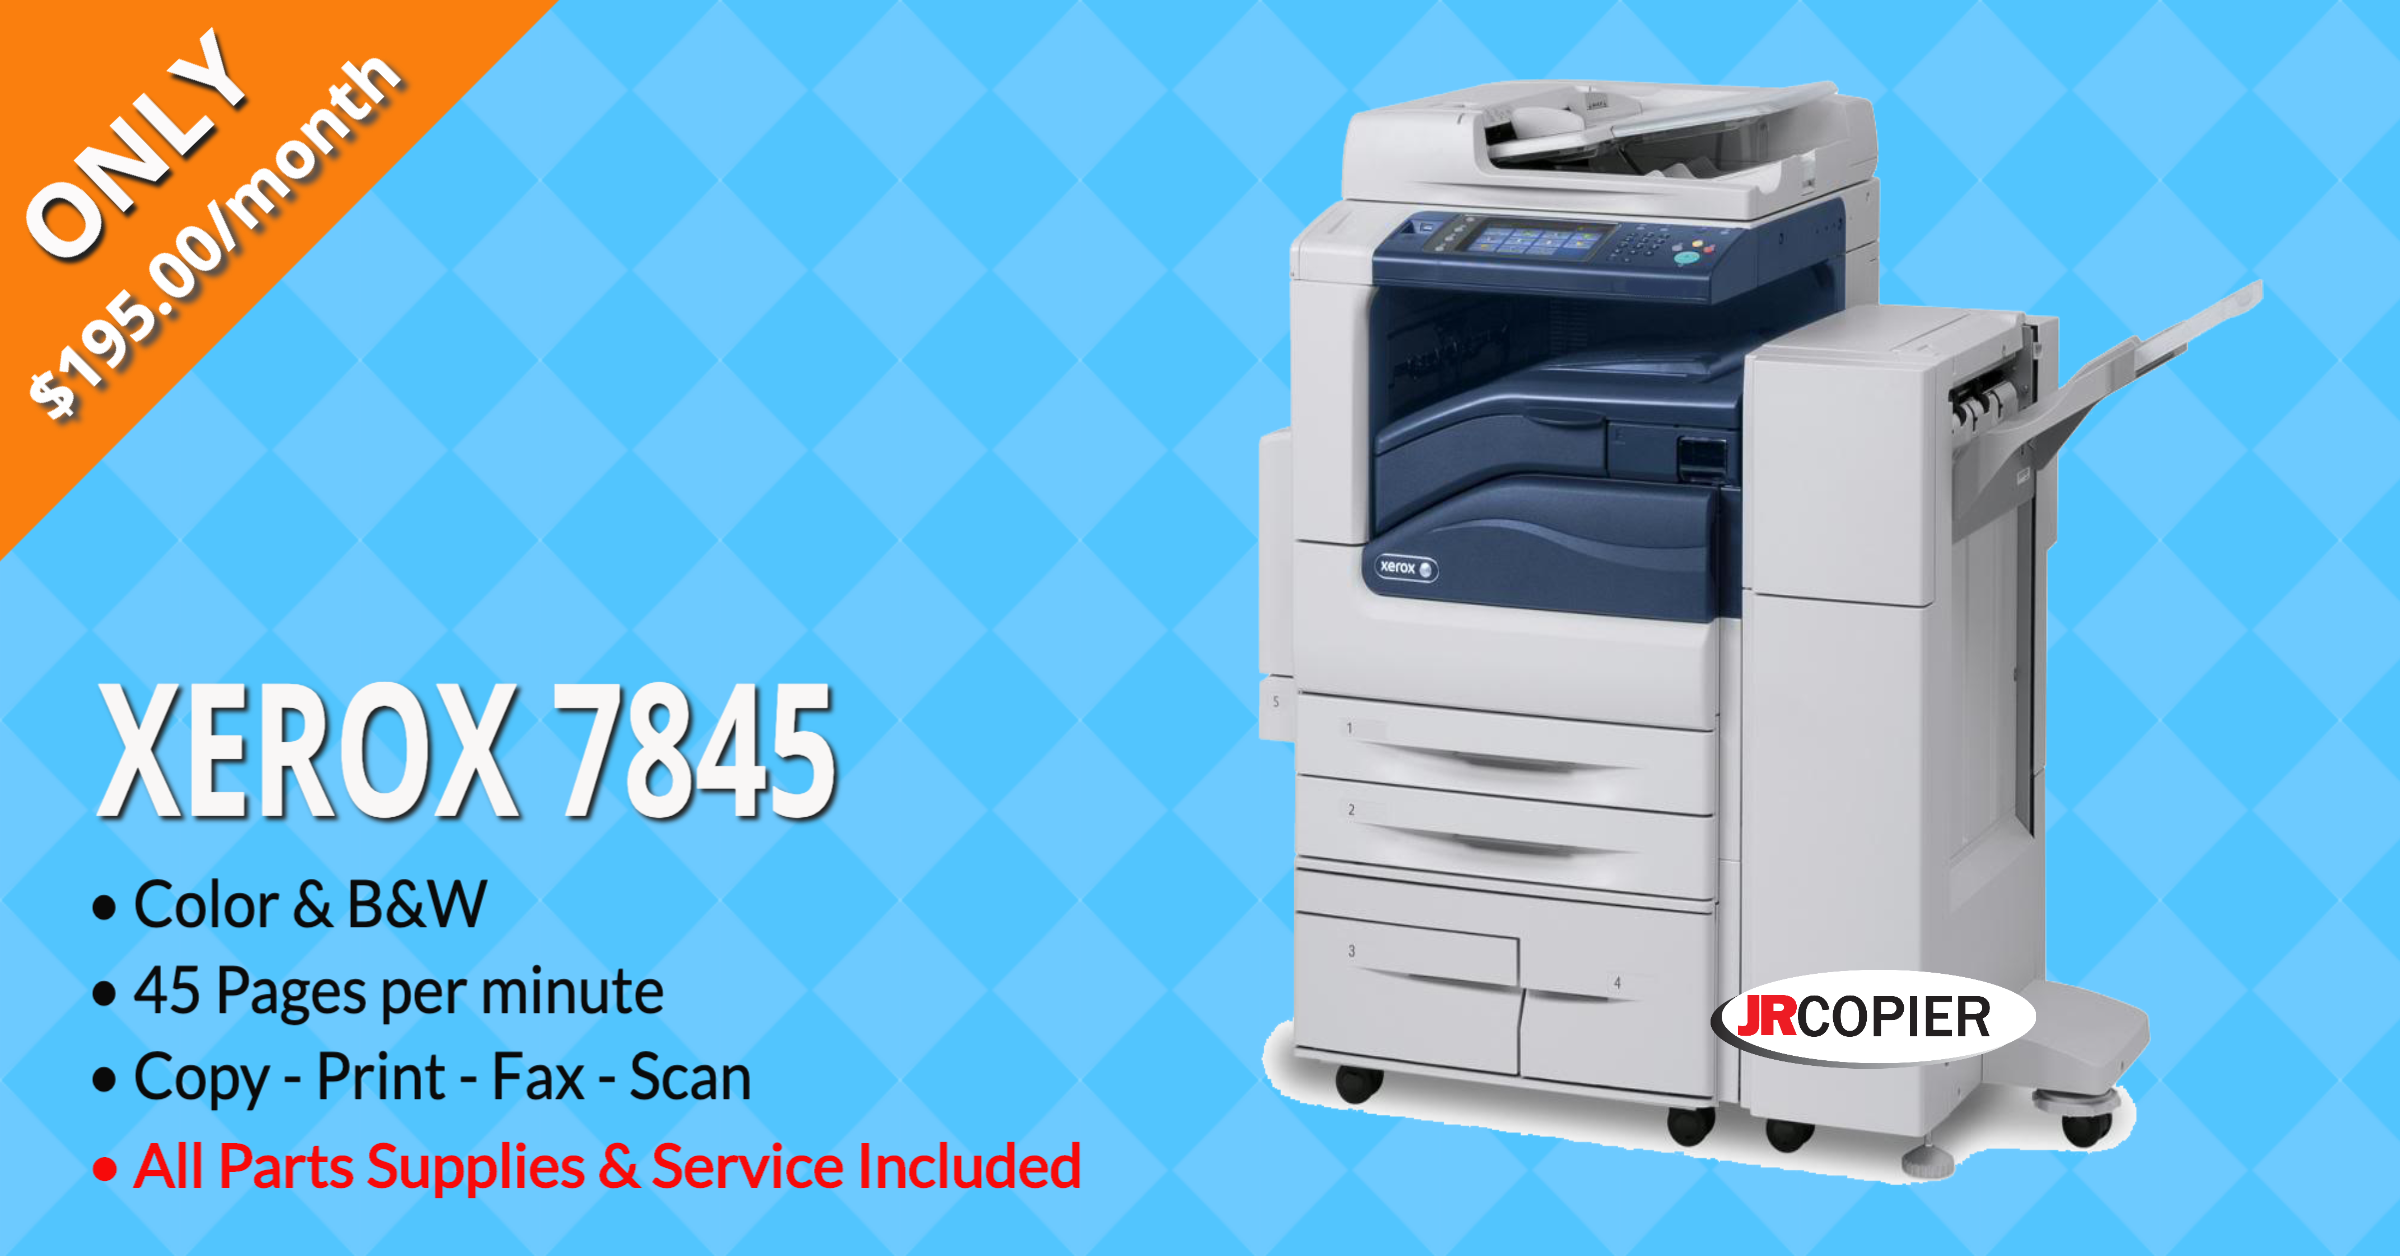 Color Copier 21740, 21795